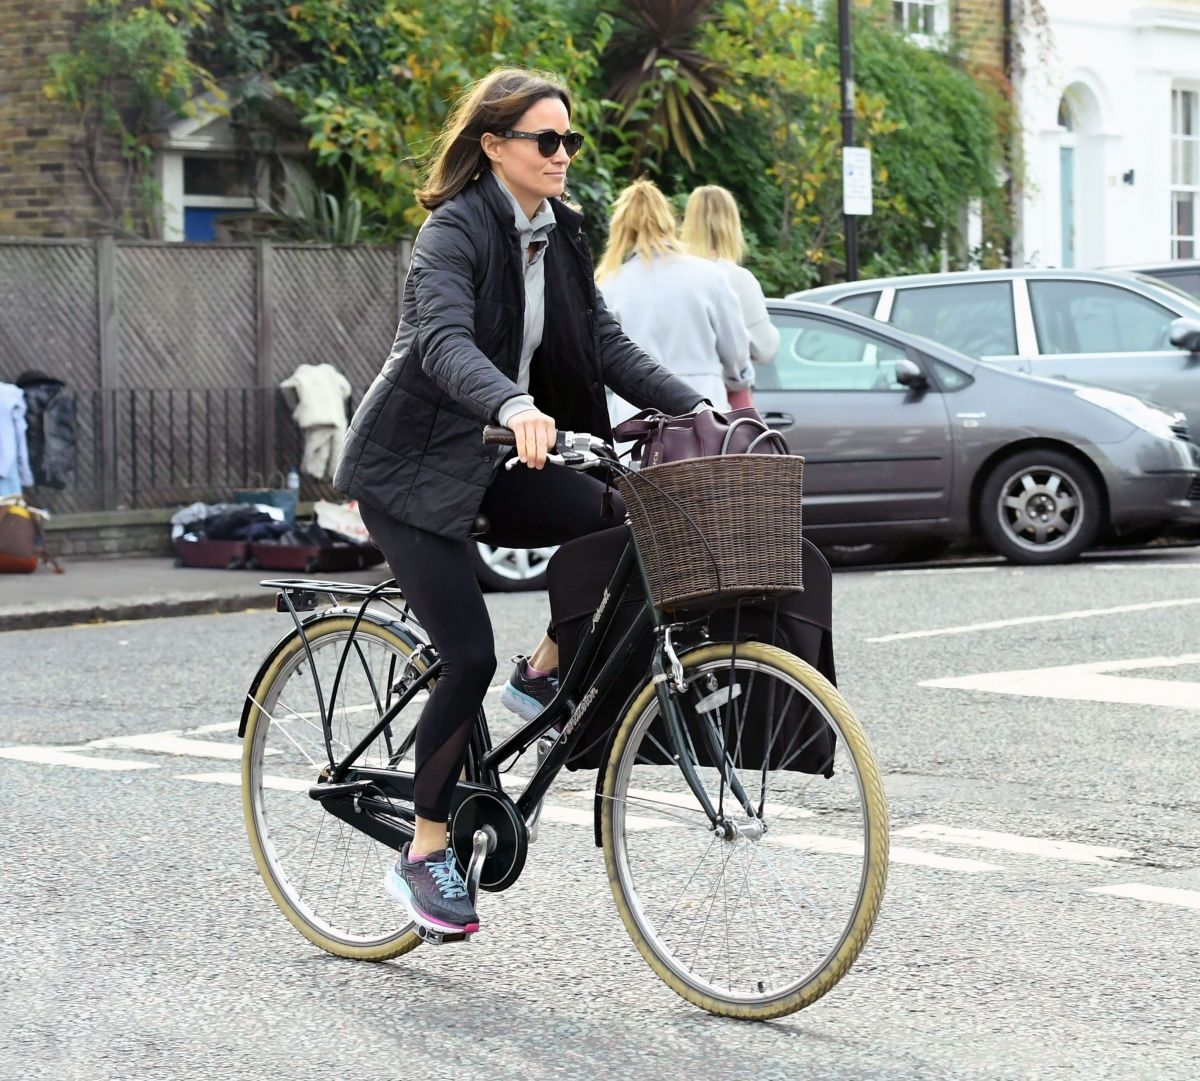 pippa-middleton-out-riding-a-bicycle-in-london-11-09-2017-2.jpg